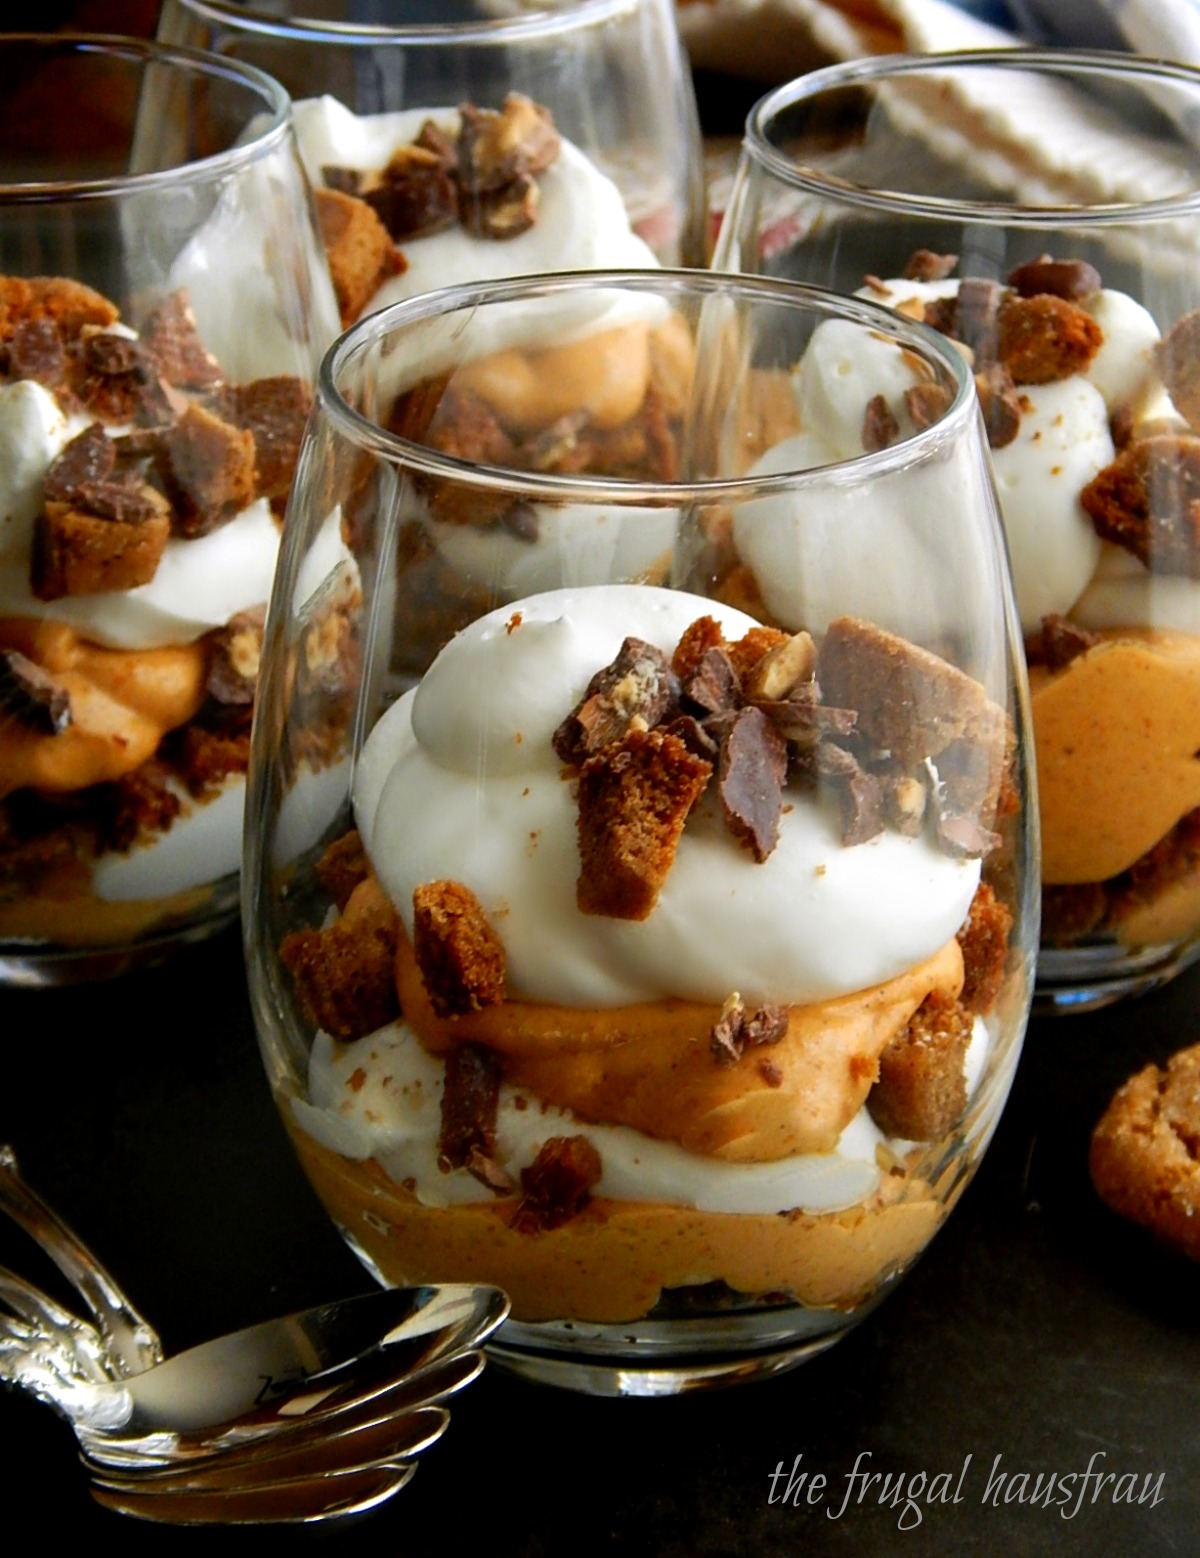 Make Ahead Pumpkin Trifles. Layers of pumpkin mousse,whipped cream, crushed gingersnaps & chocolate covered almonds.